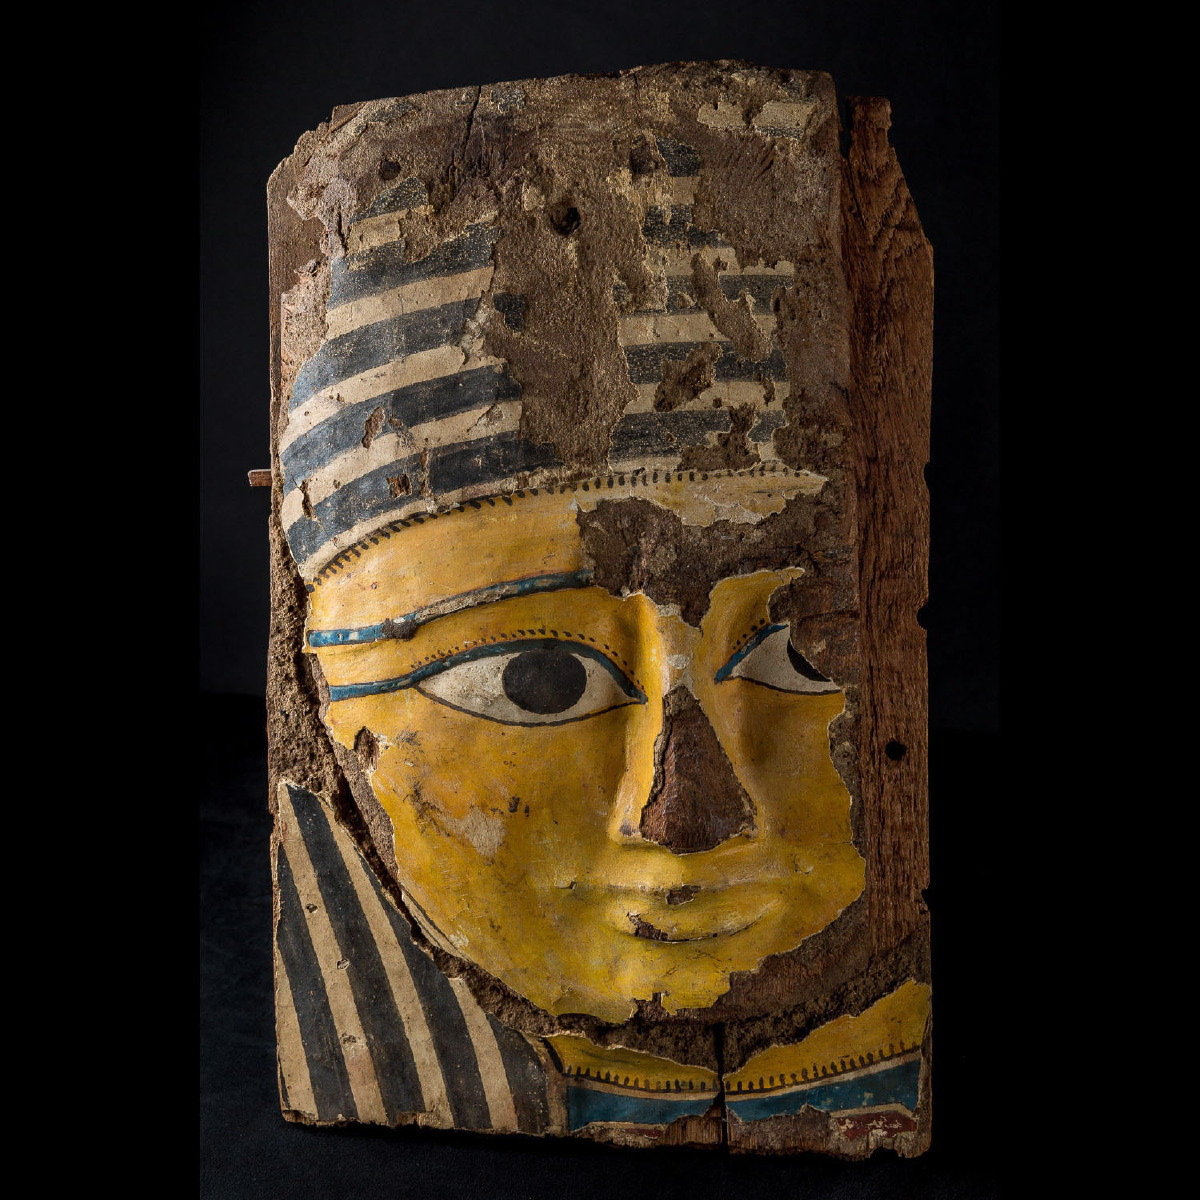 Photo of sarcophagus-mask-in-wood-26-th-dynasty-galerie-golconda-specialist-in-archeology